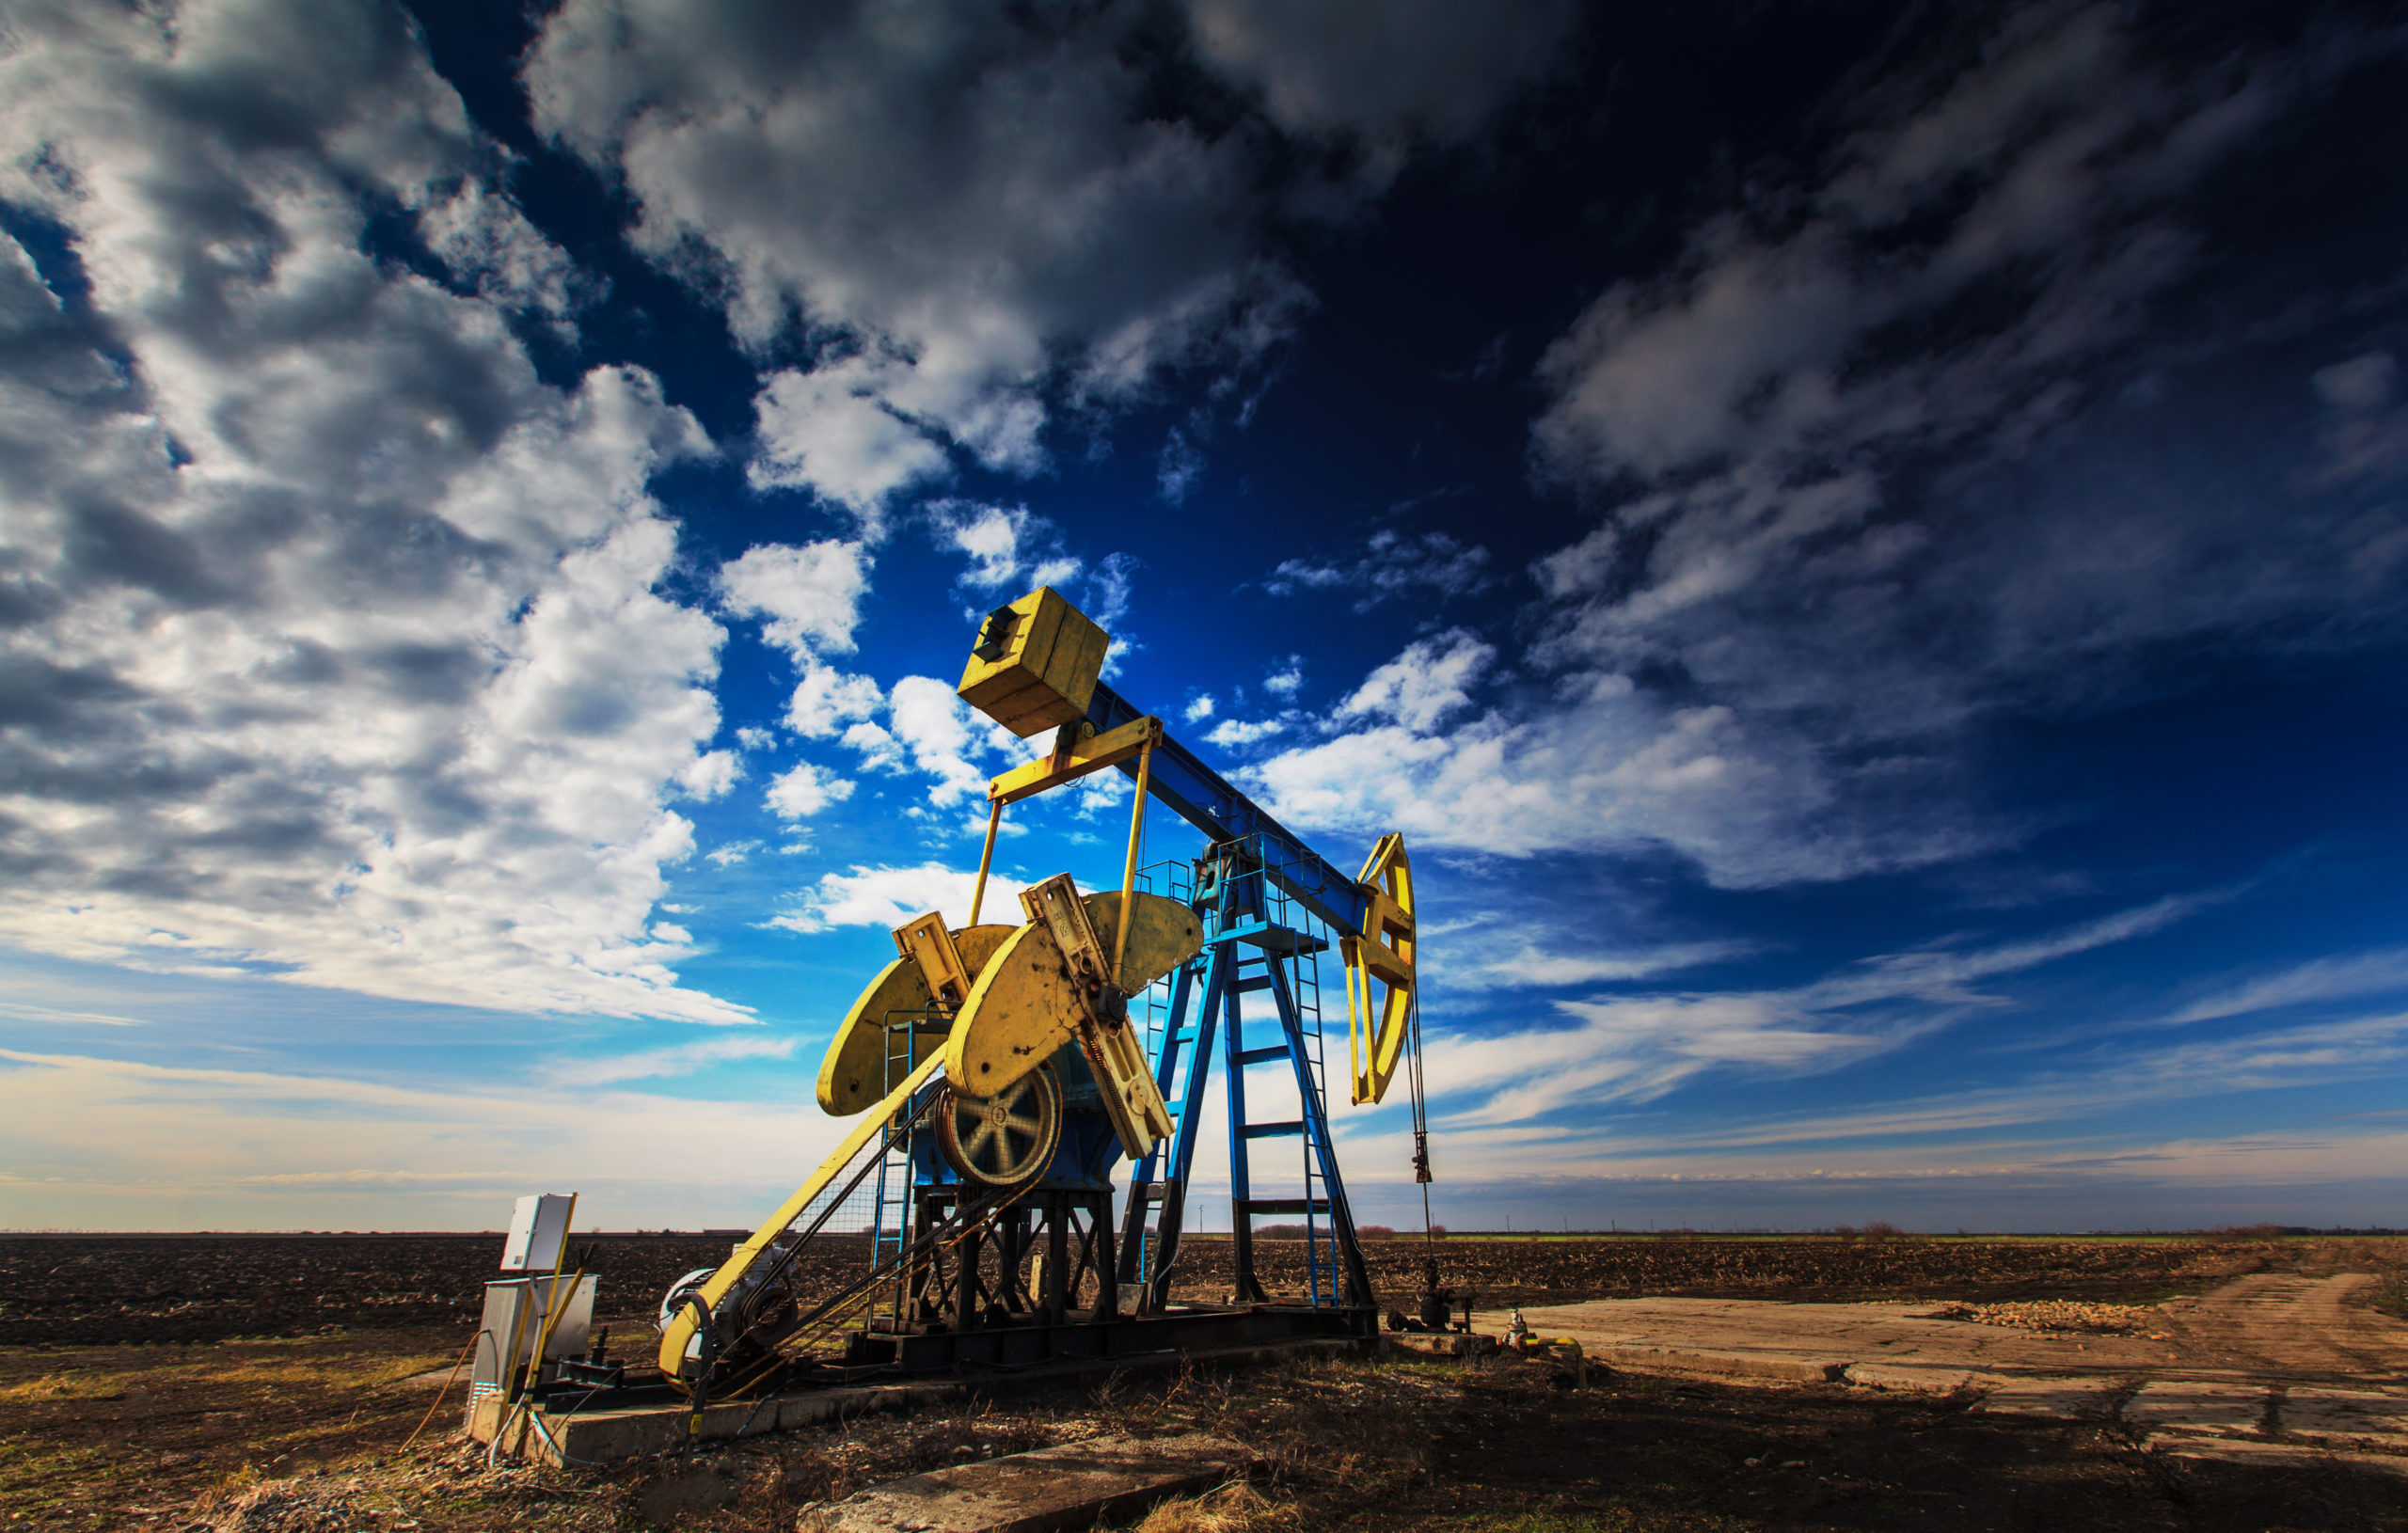 Operating,Oil,Well,Profiled,On,Dramatic,Cloudy,Sky